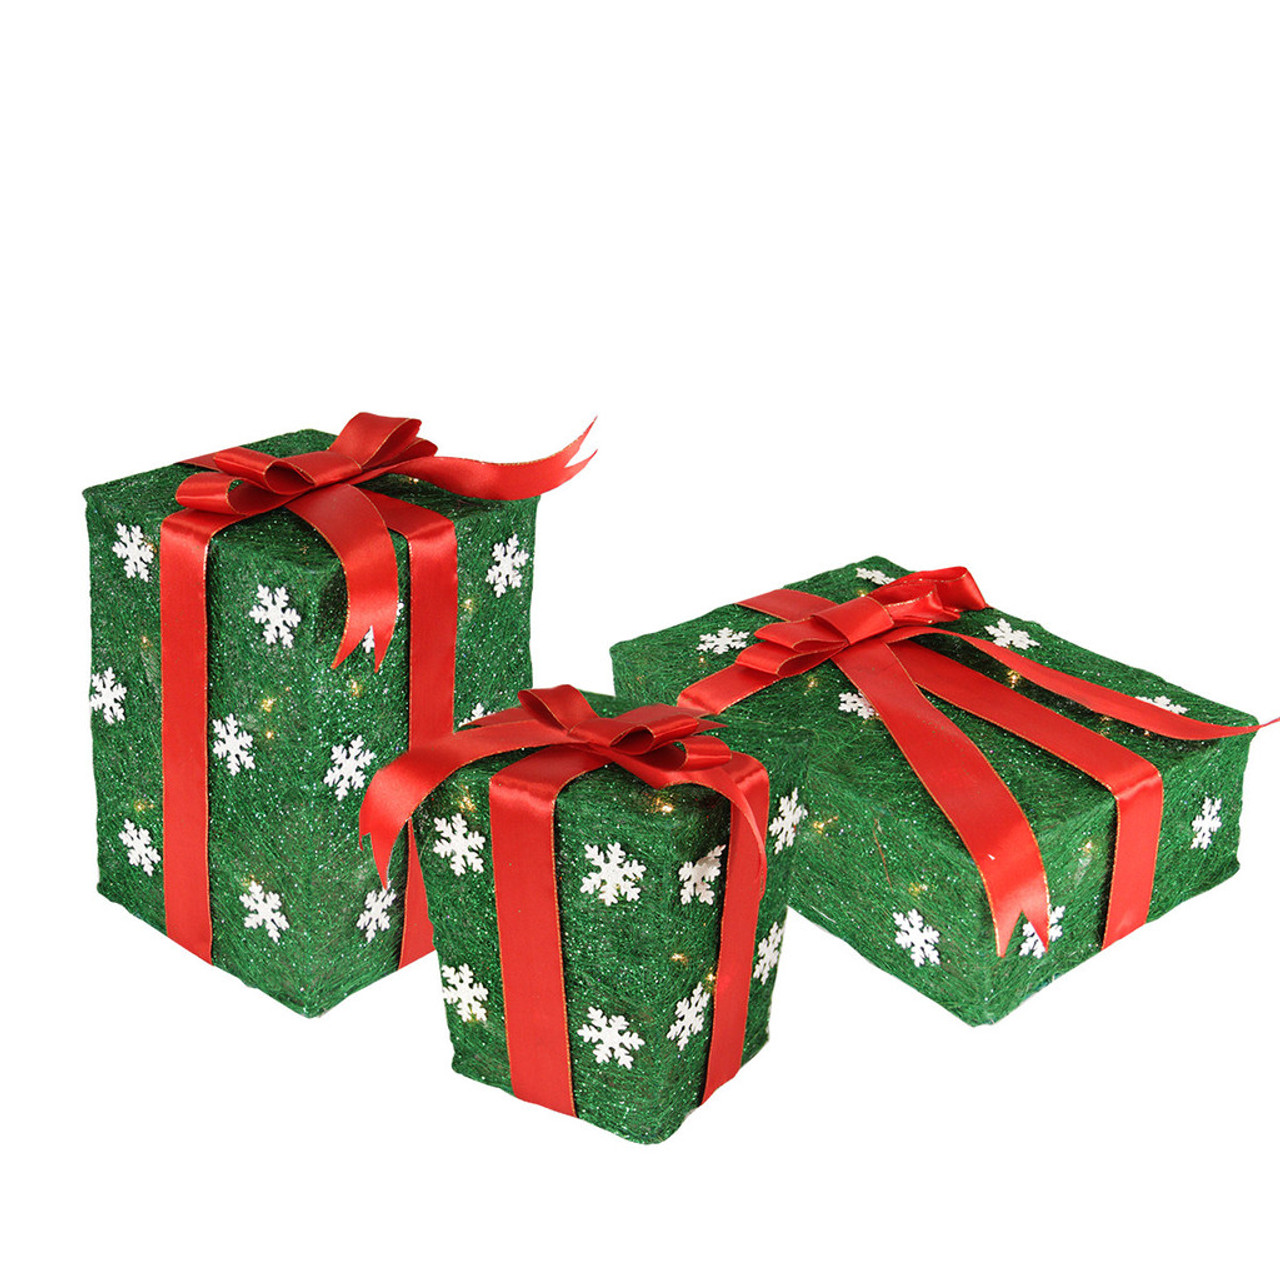 set of 3 green snowflake sisal gift boxes lighted christmas outdoor decorations 31467183